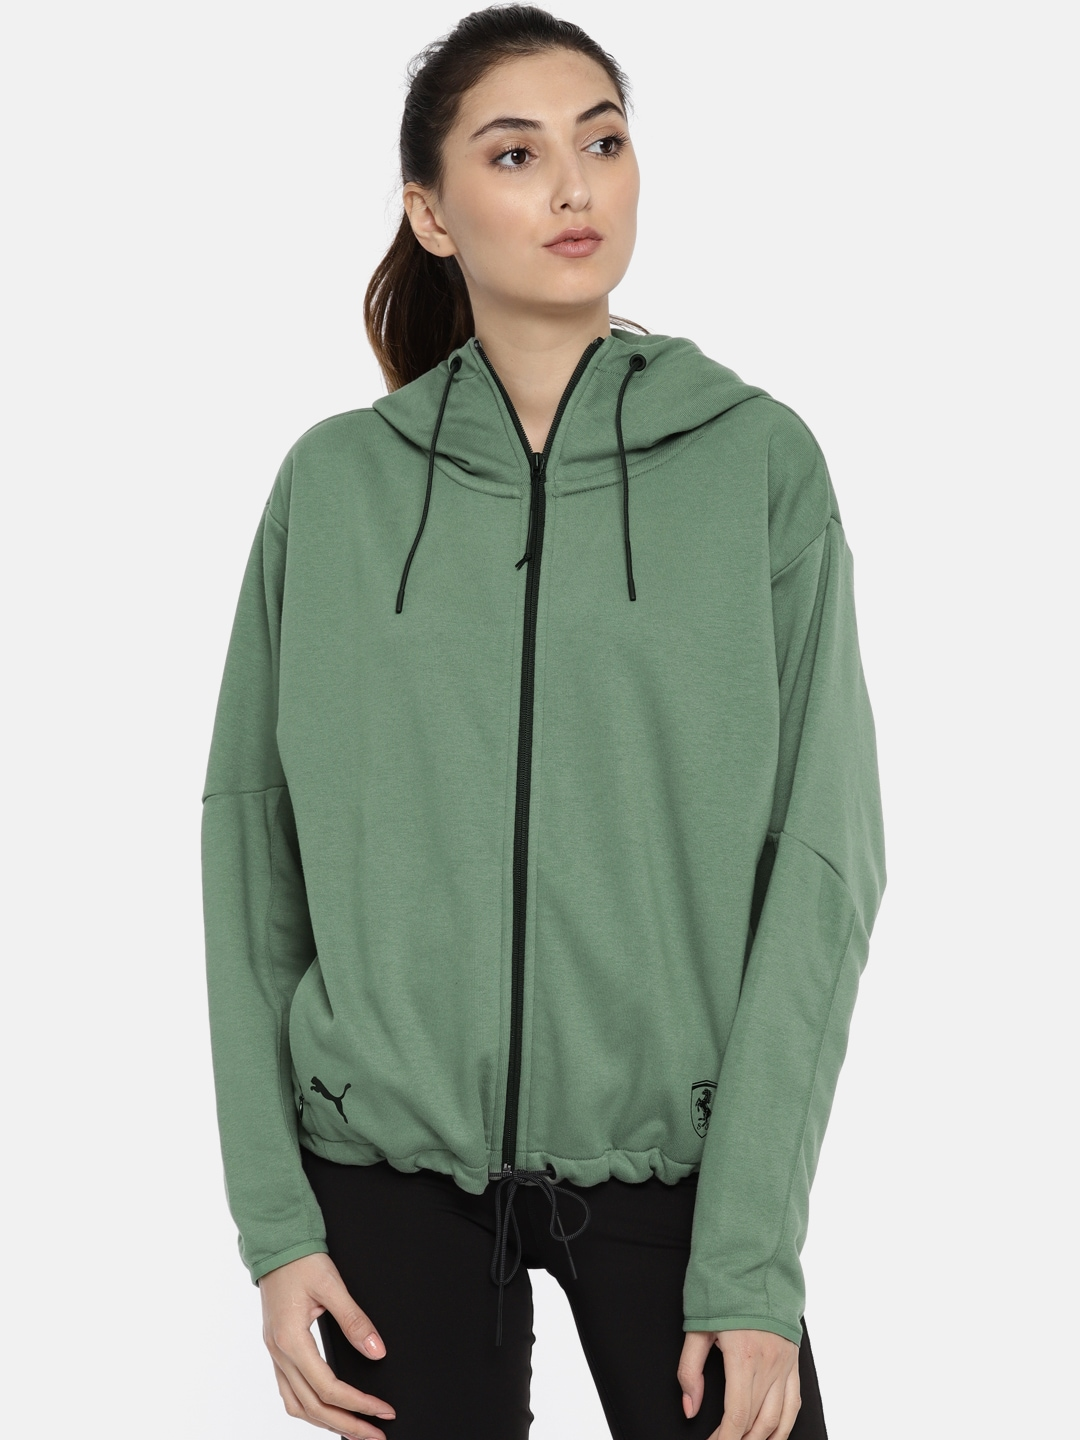 7d5ae3f29fb2 Women s Puma Jackets - Buy Puma Jackets for Women Online in India